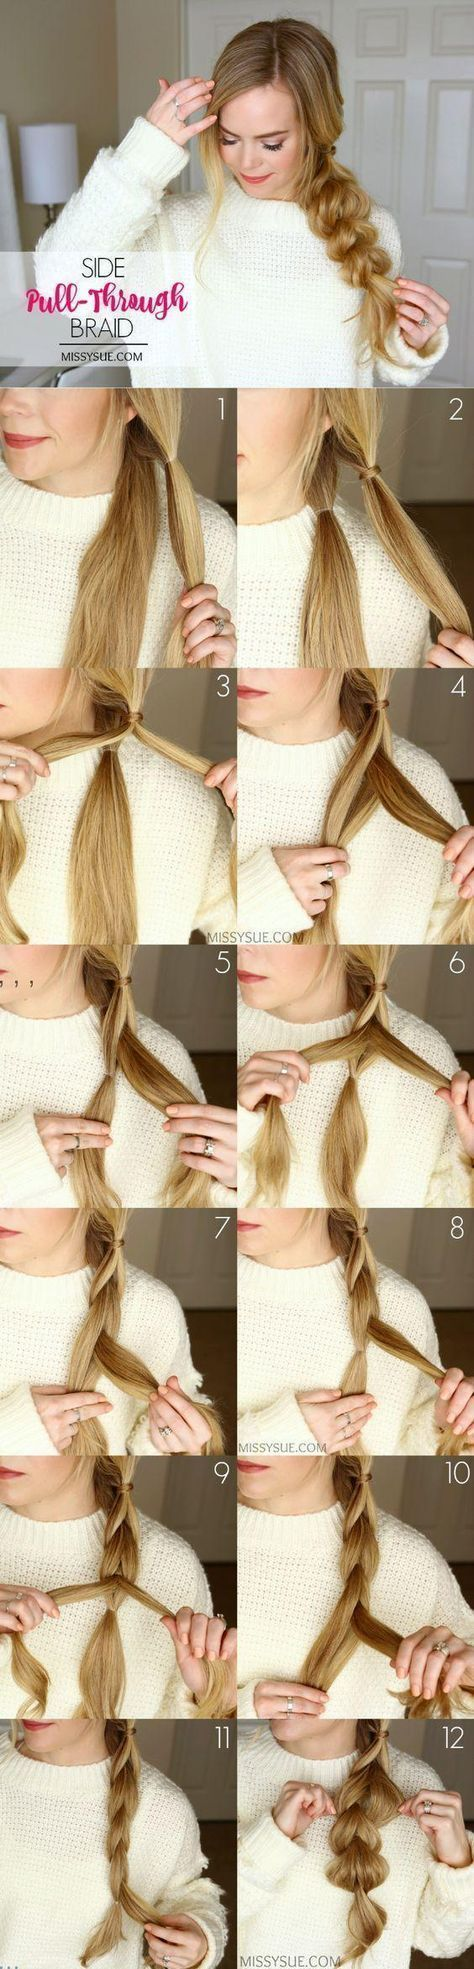 DIY A LAX ZOPF HAIR LOVE #hair #love #style #beautiful #makeup #skin